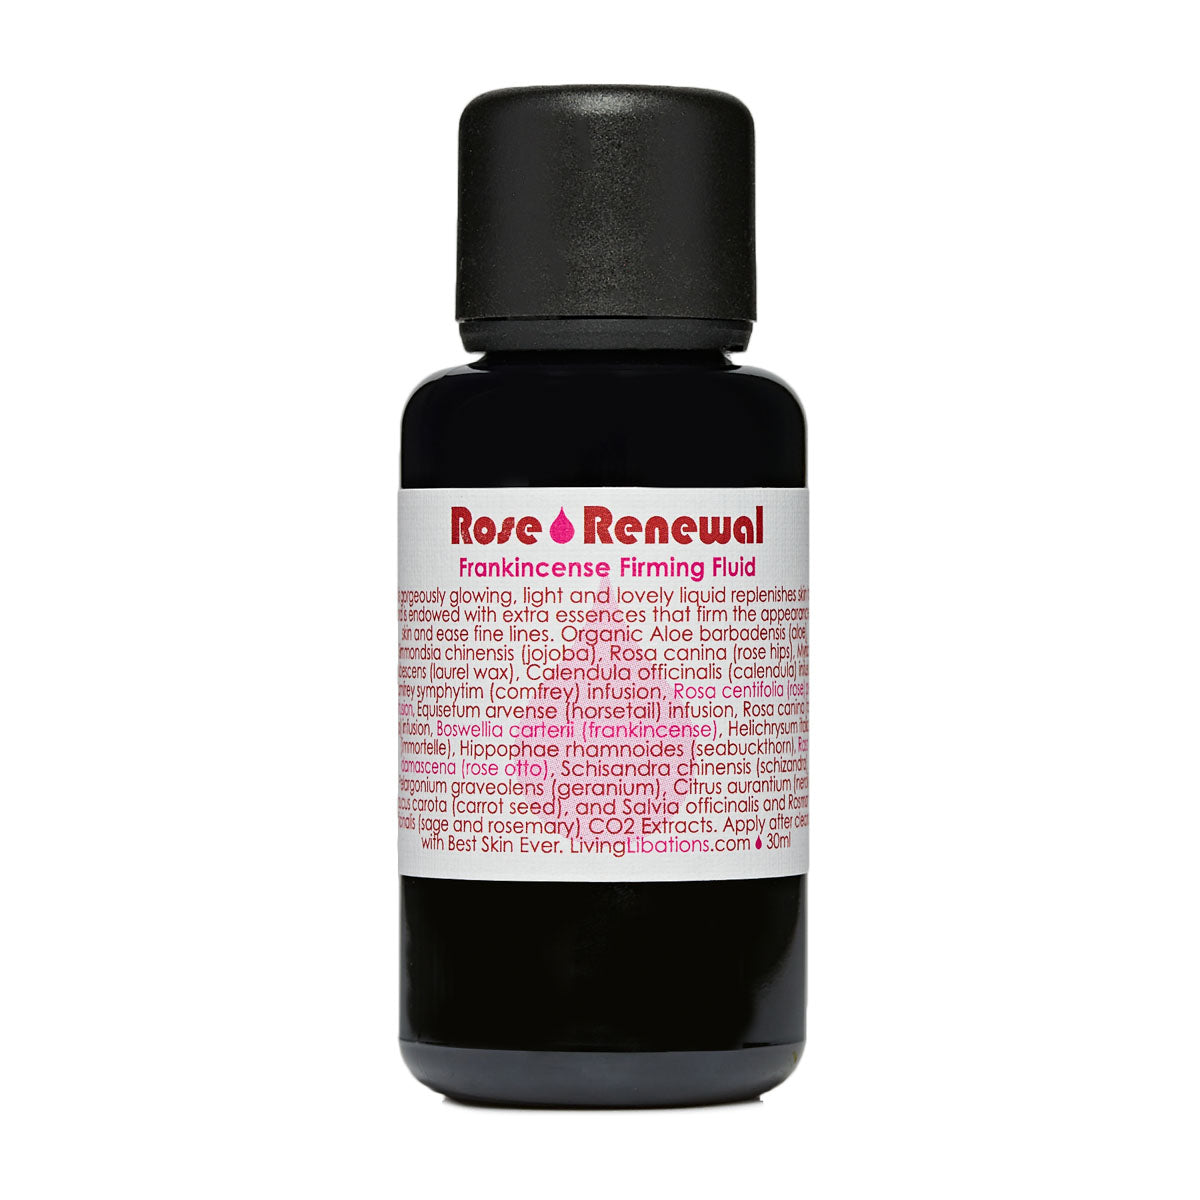 Living Libations - Rose Renewal Frankincense Firming Fluid (3ml / 30ml / 50ml)